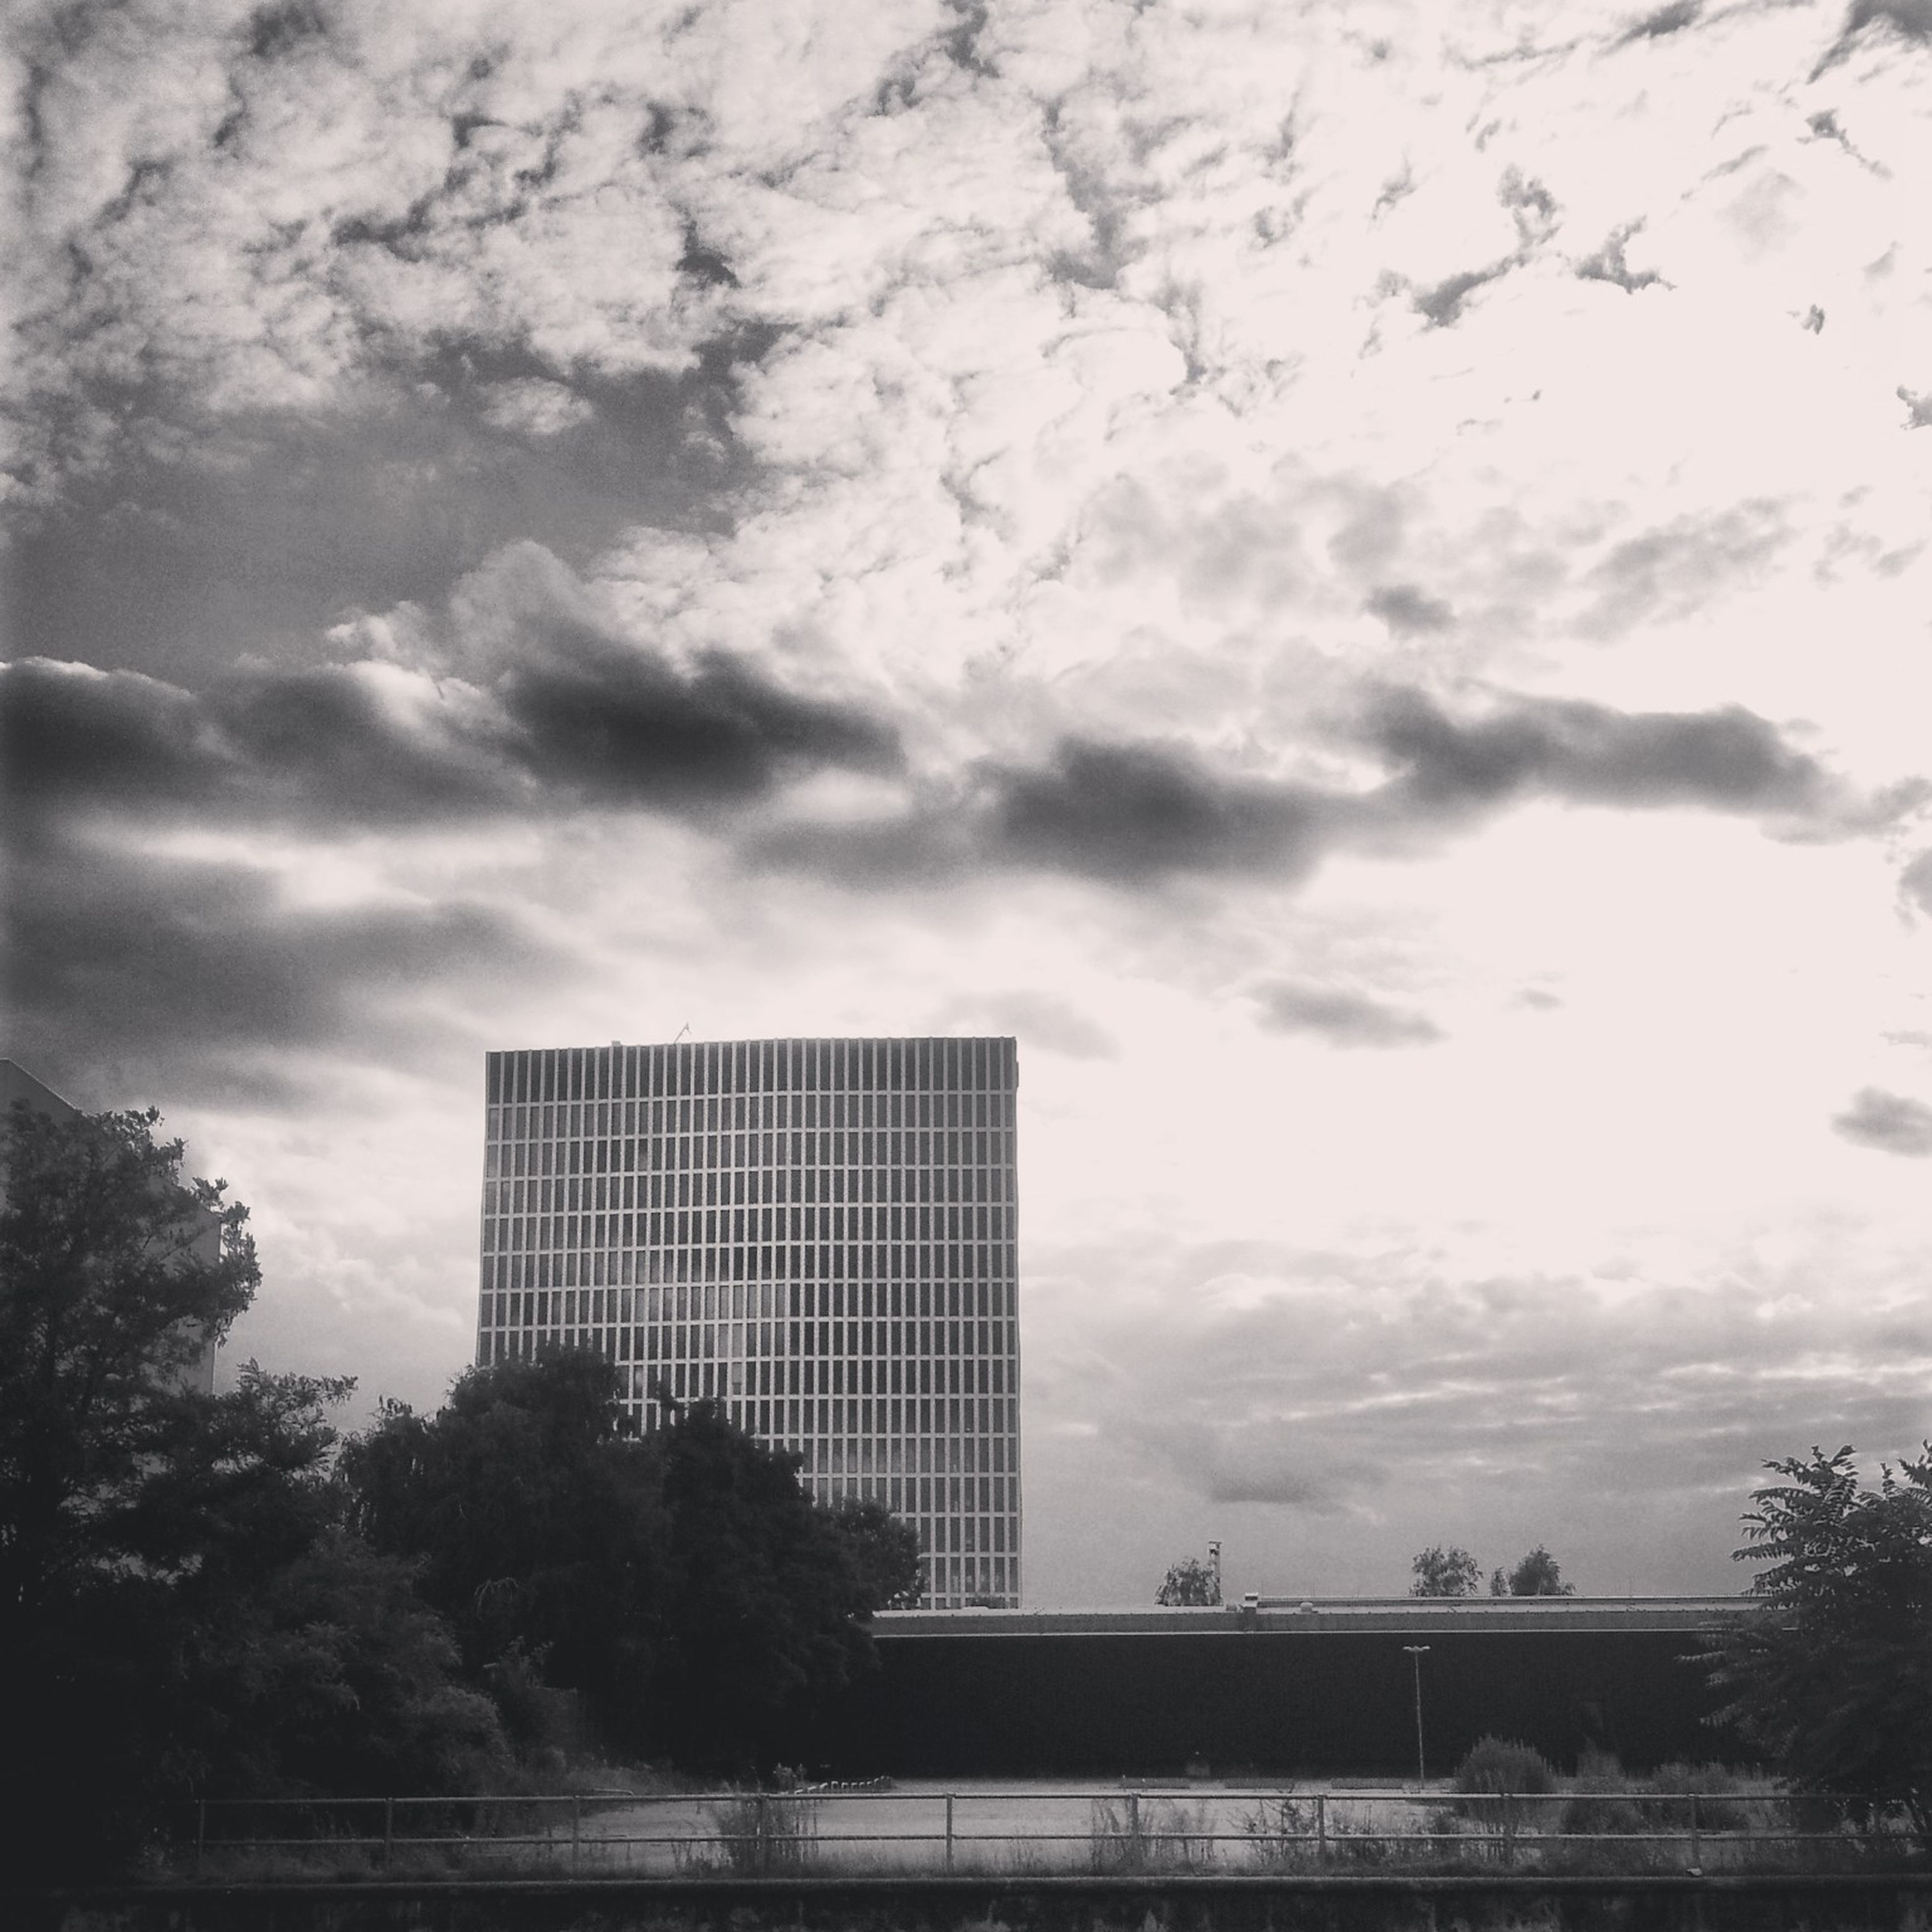 sky, built structure, architecture, cloud - sky, building exterior, cloudy, tree, low angle view, city, overcast, cloud, weather, building, day, modern, outdoors, office building, no people, tall - high, skyscraper